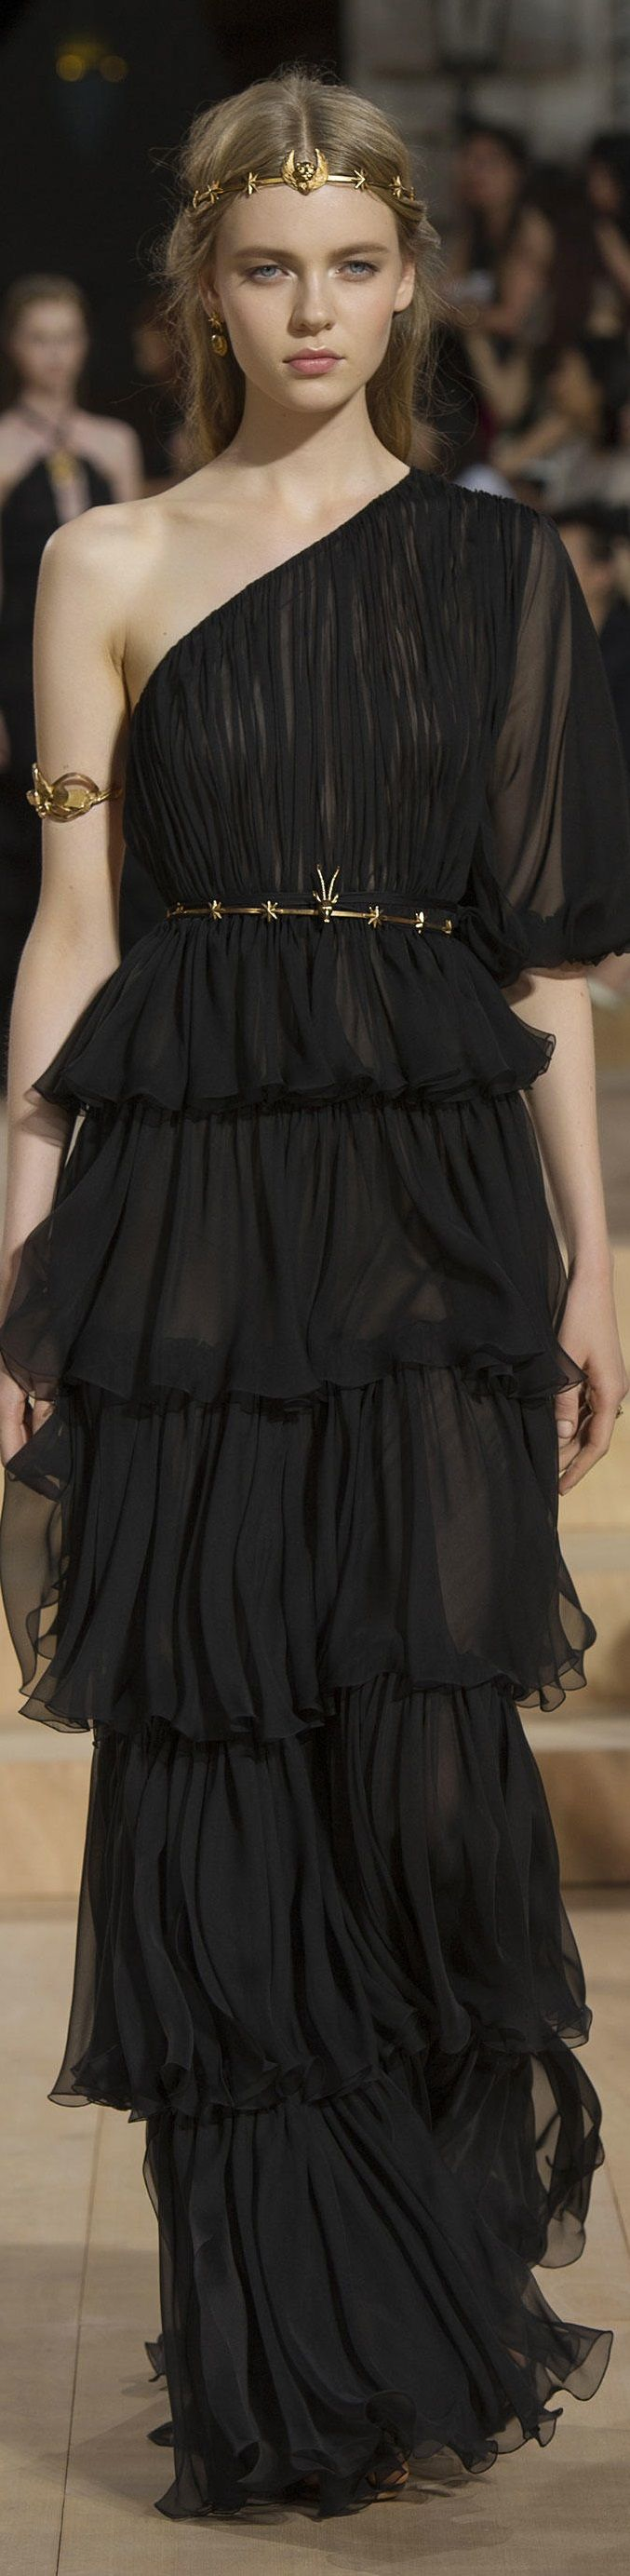 The Valentino dress is similar to a stola. Stolas were dresses that were fastened at the shoulder.